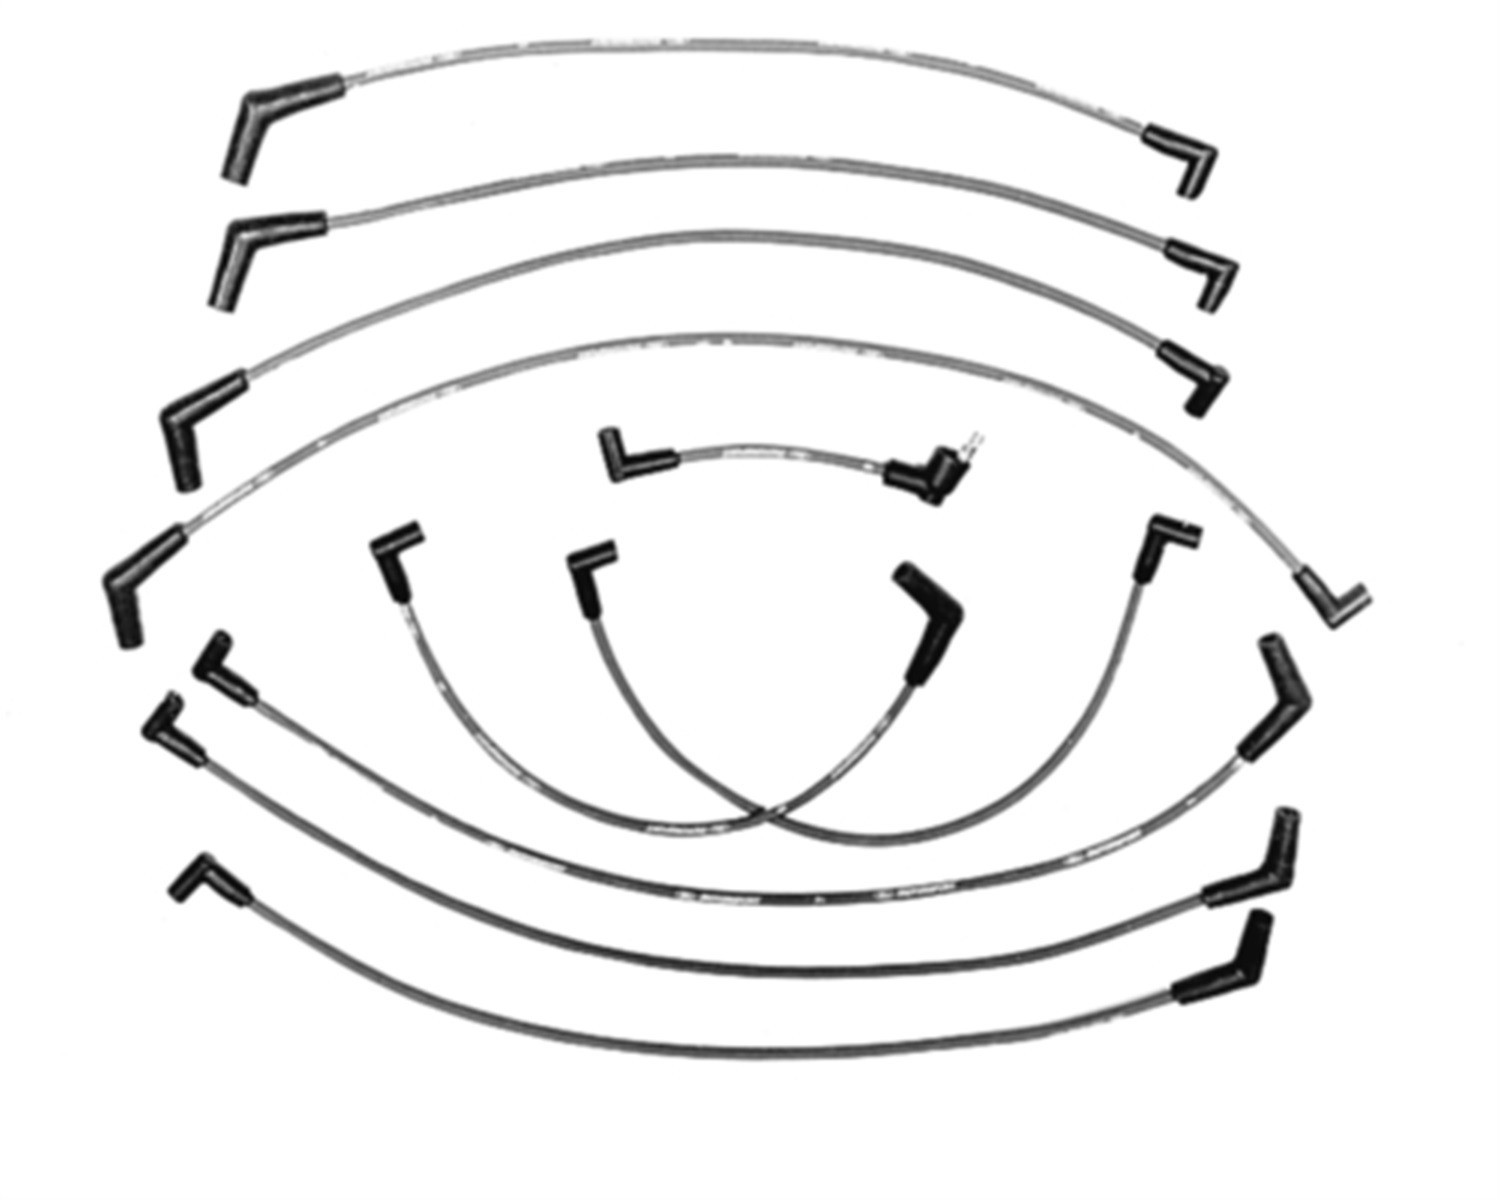 Ford Performance Parts M-12259-C302 9mm Ignition Wire Set